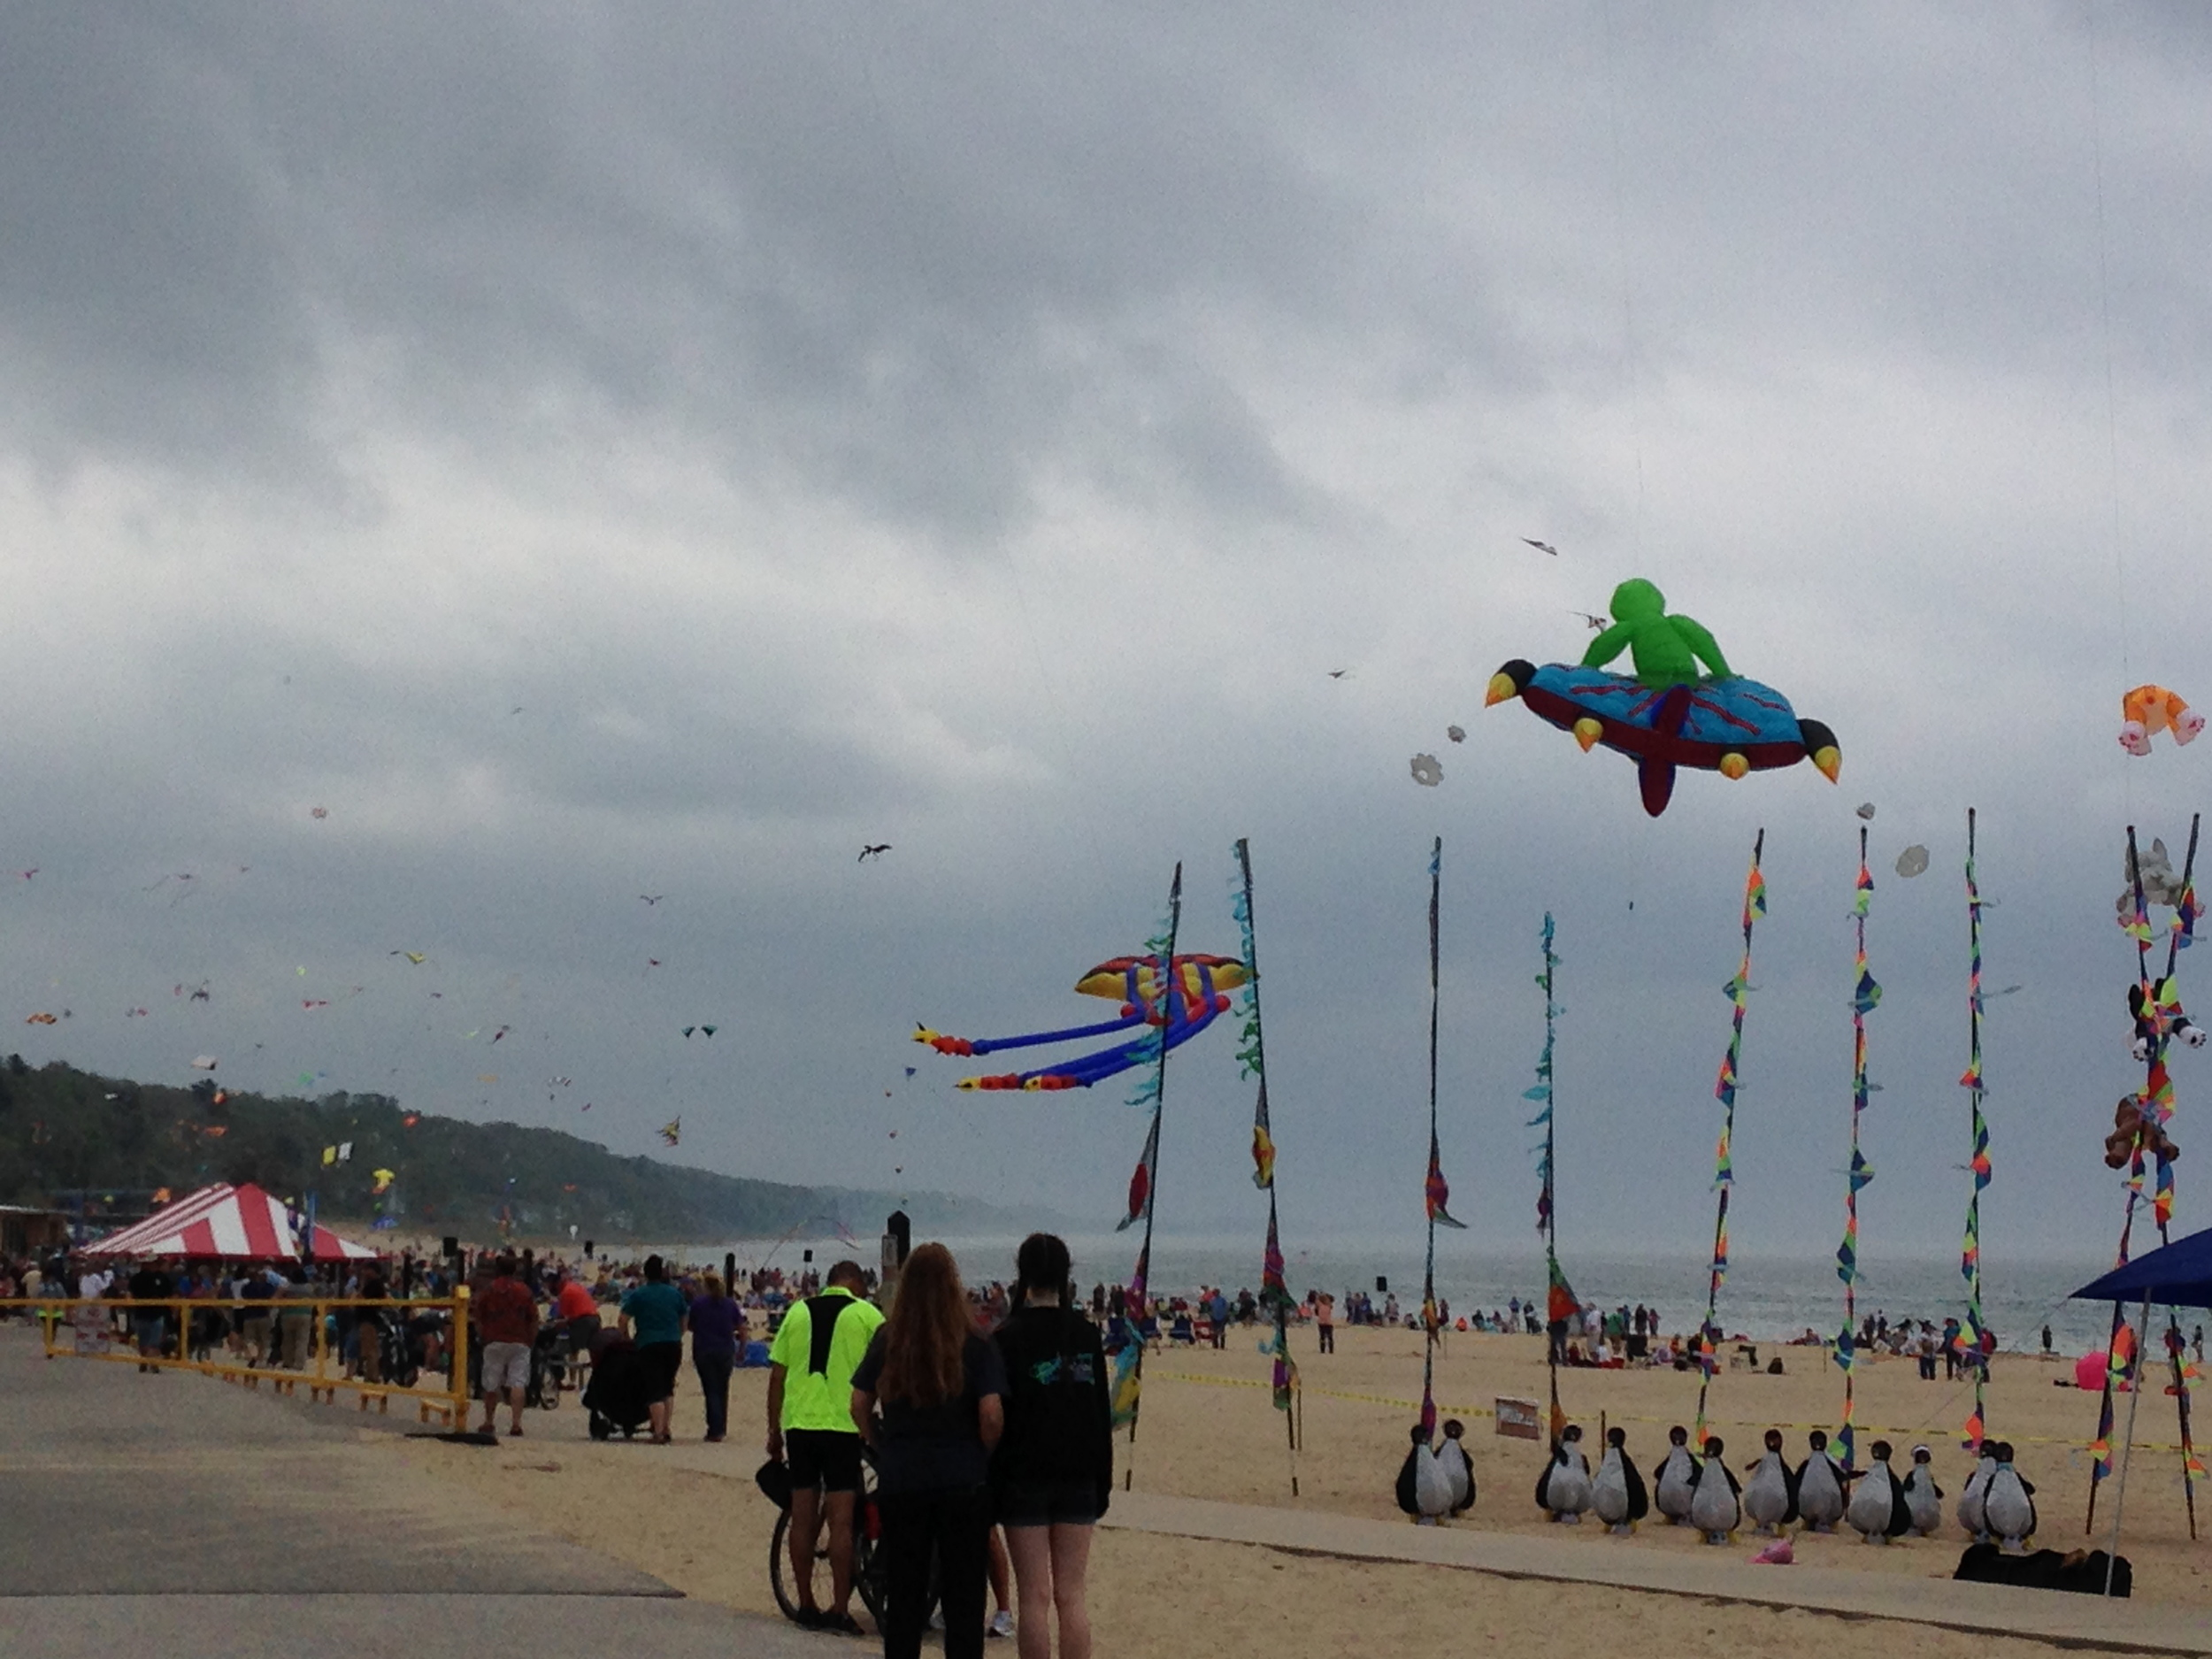 I love the alien/UFO kite.